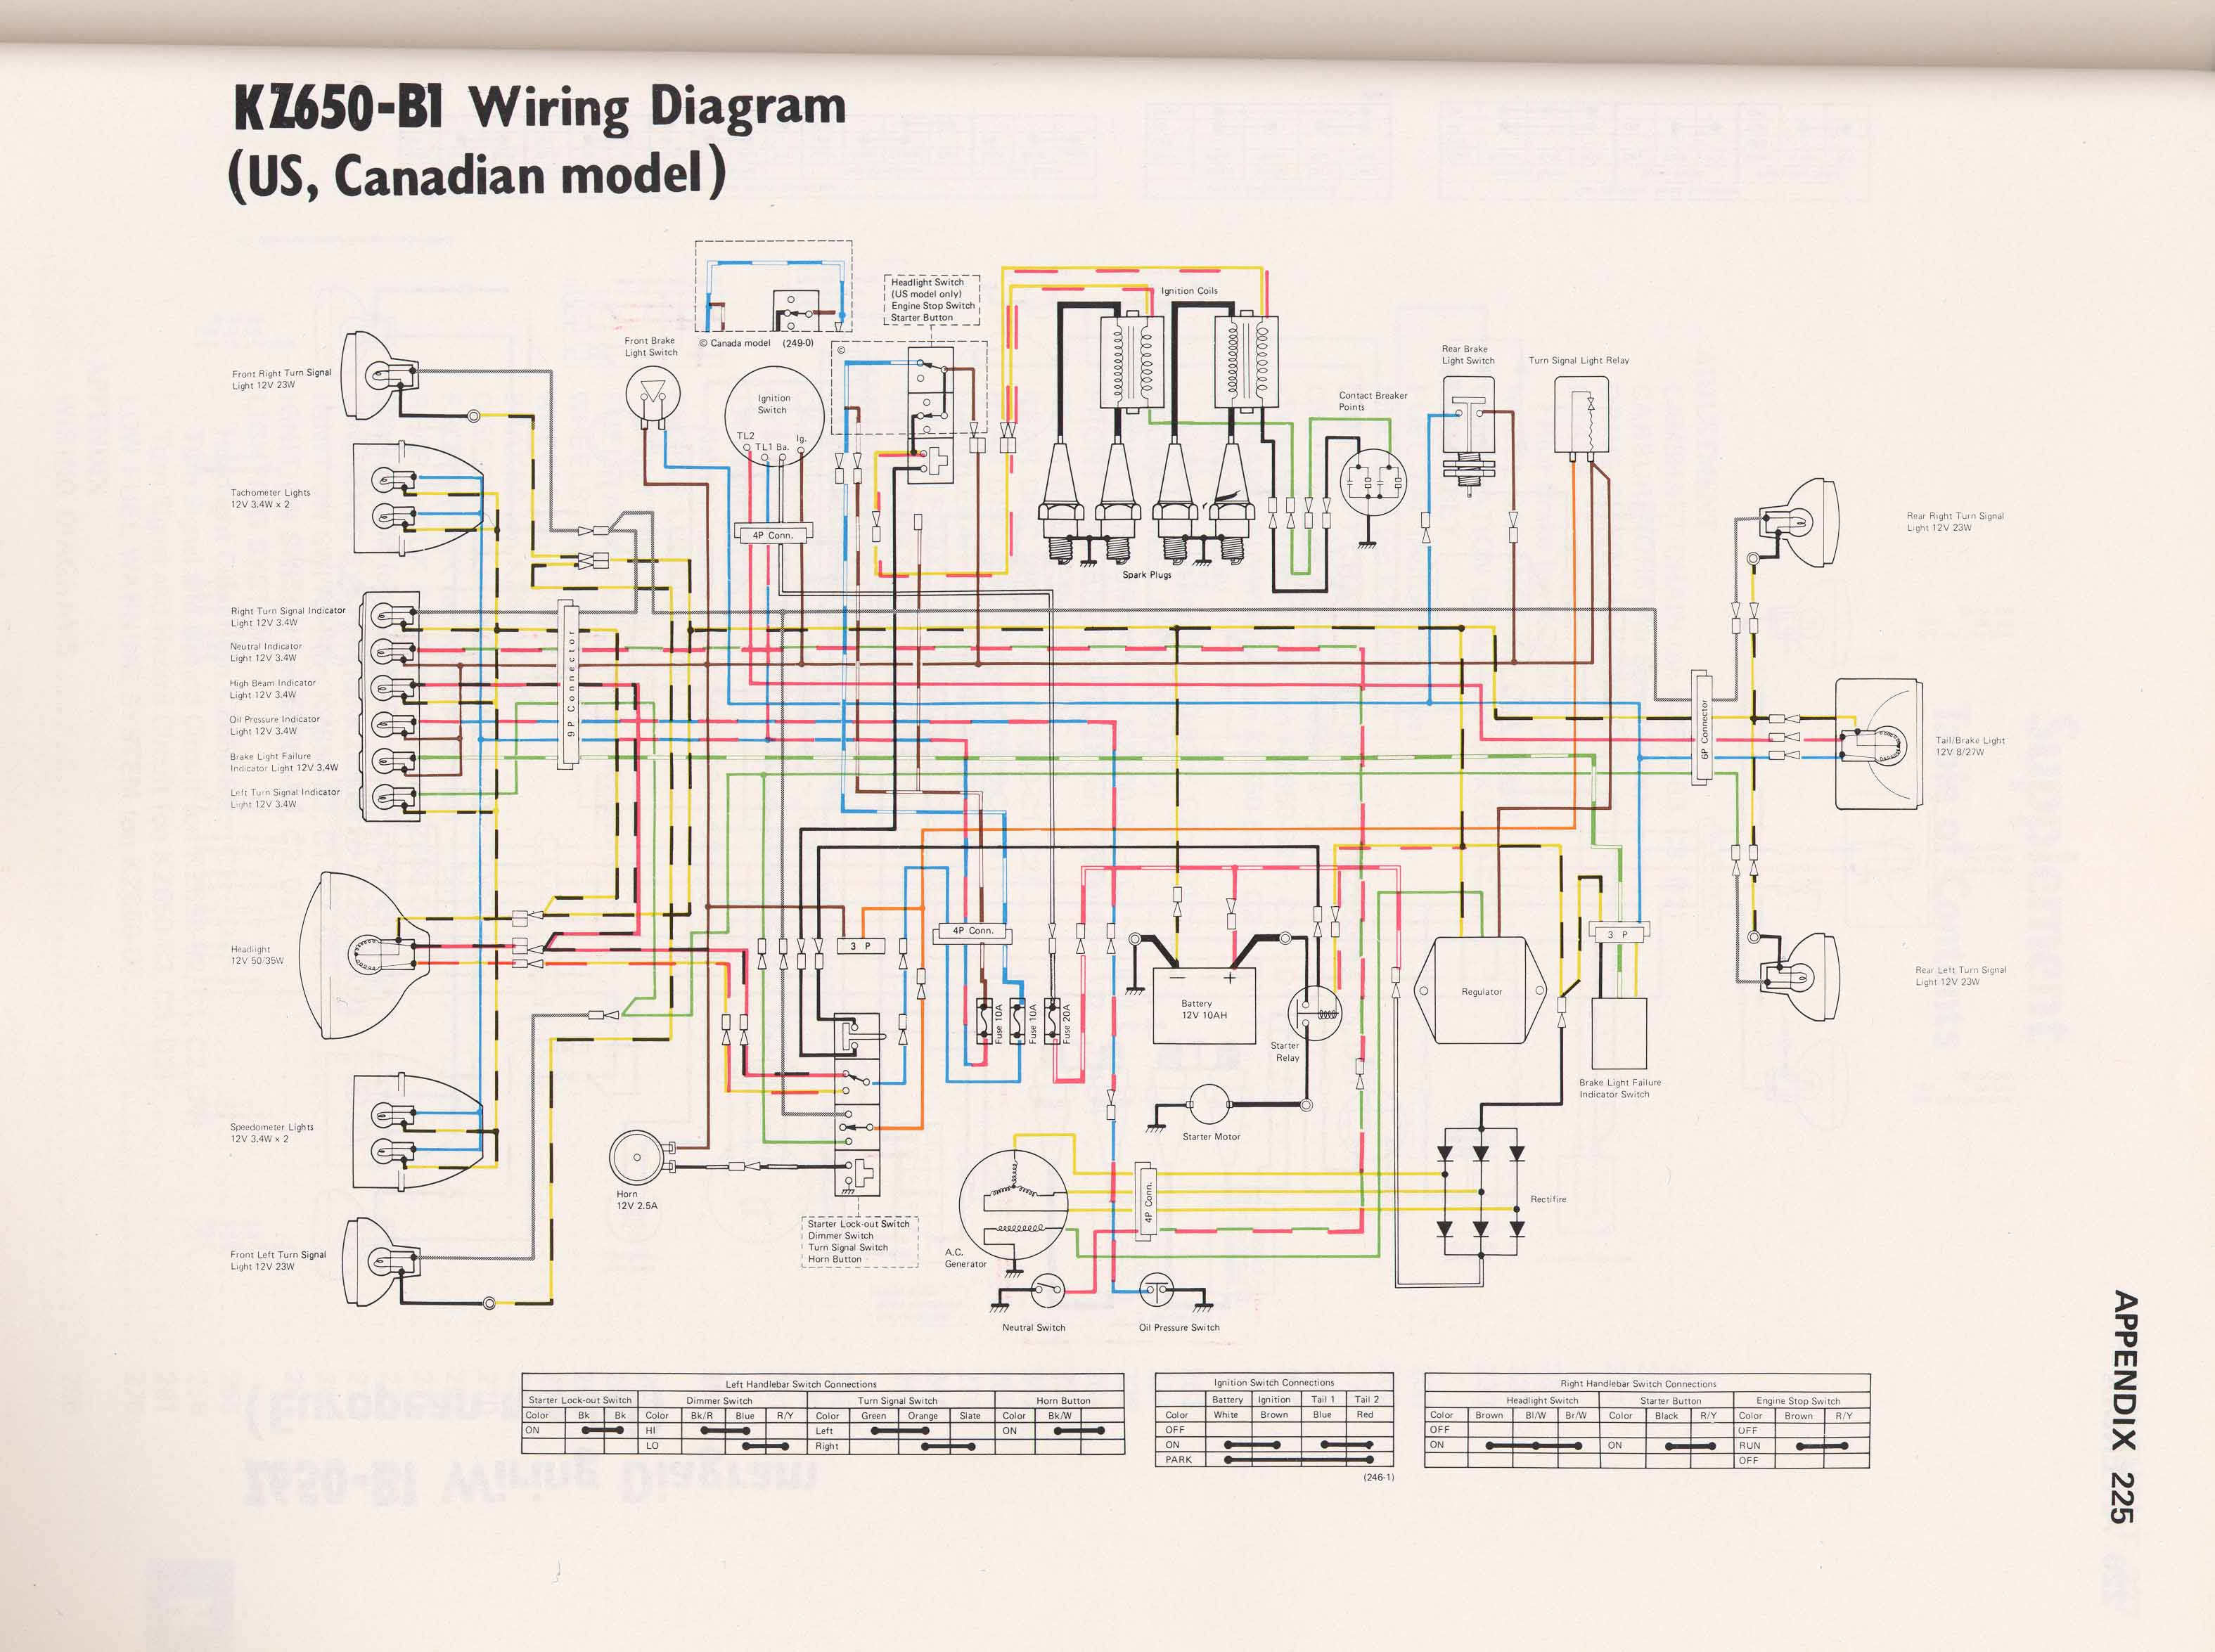 KZ650 B1 kz650 info wiring diagrams kawasaki wiring diagram at gsmx.co